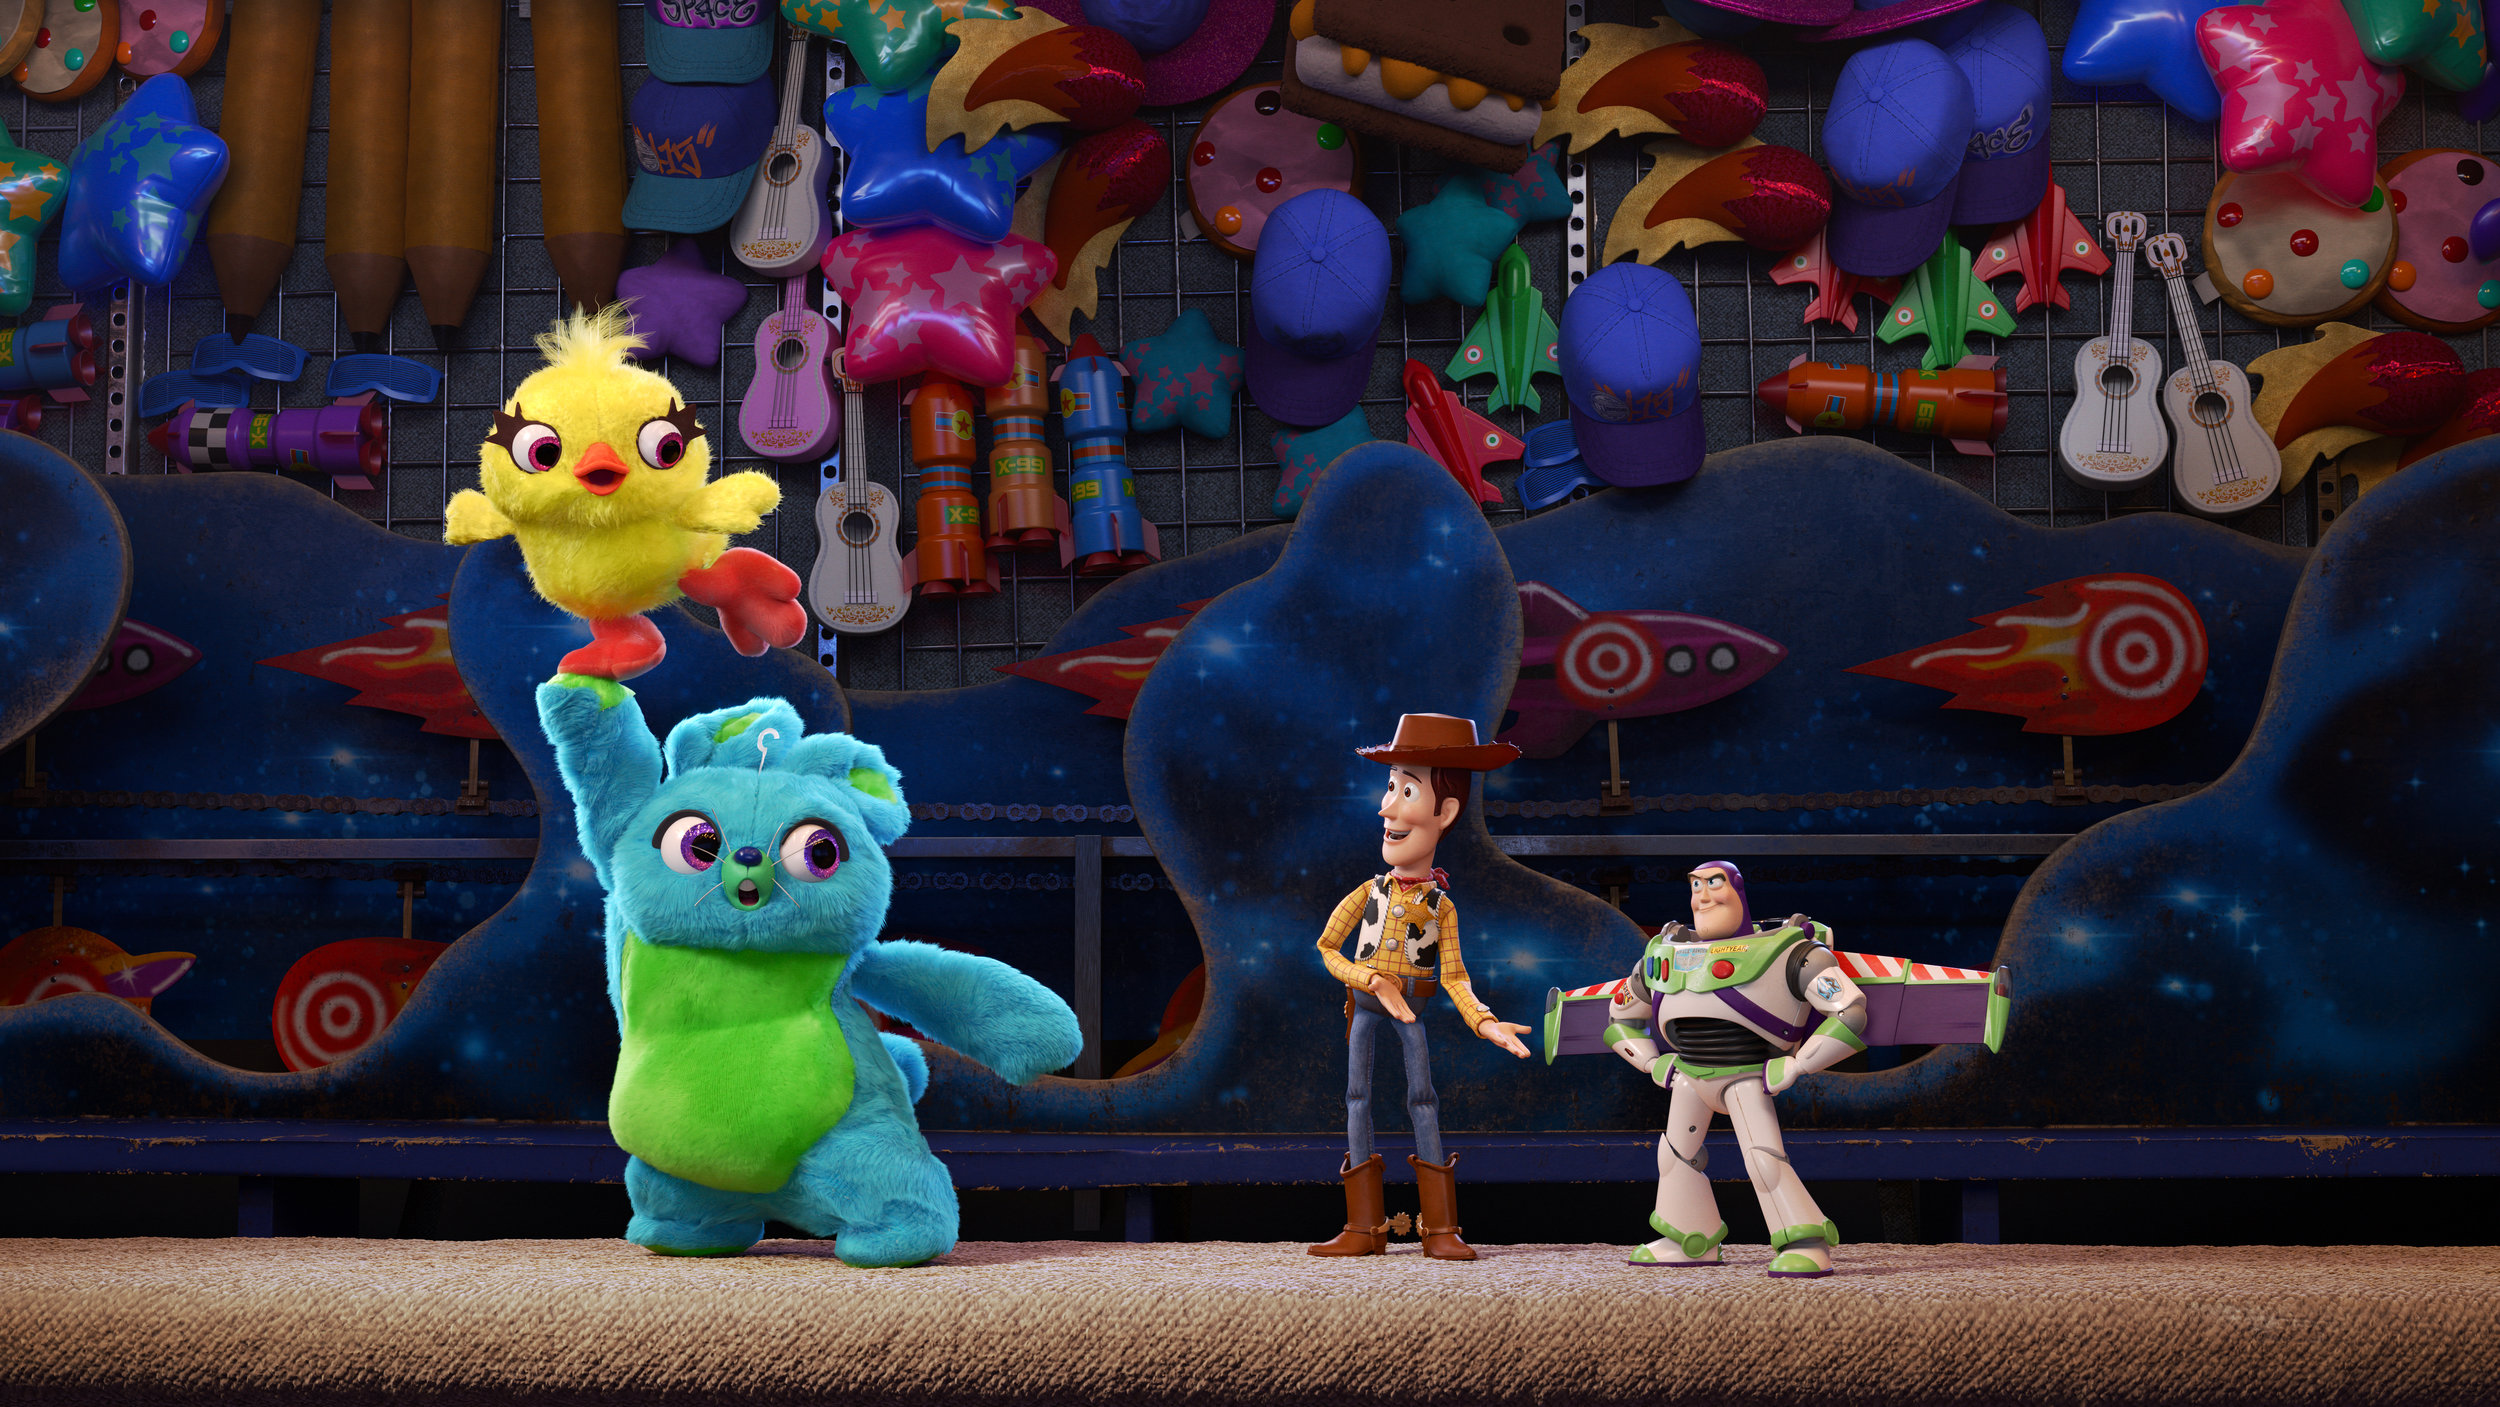 Photo: Disney-Pixar's Toy Story 4